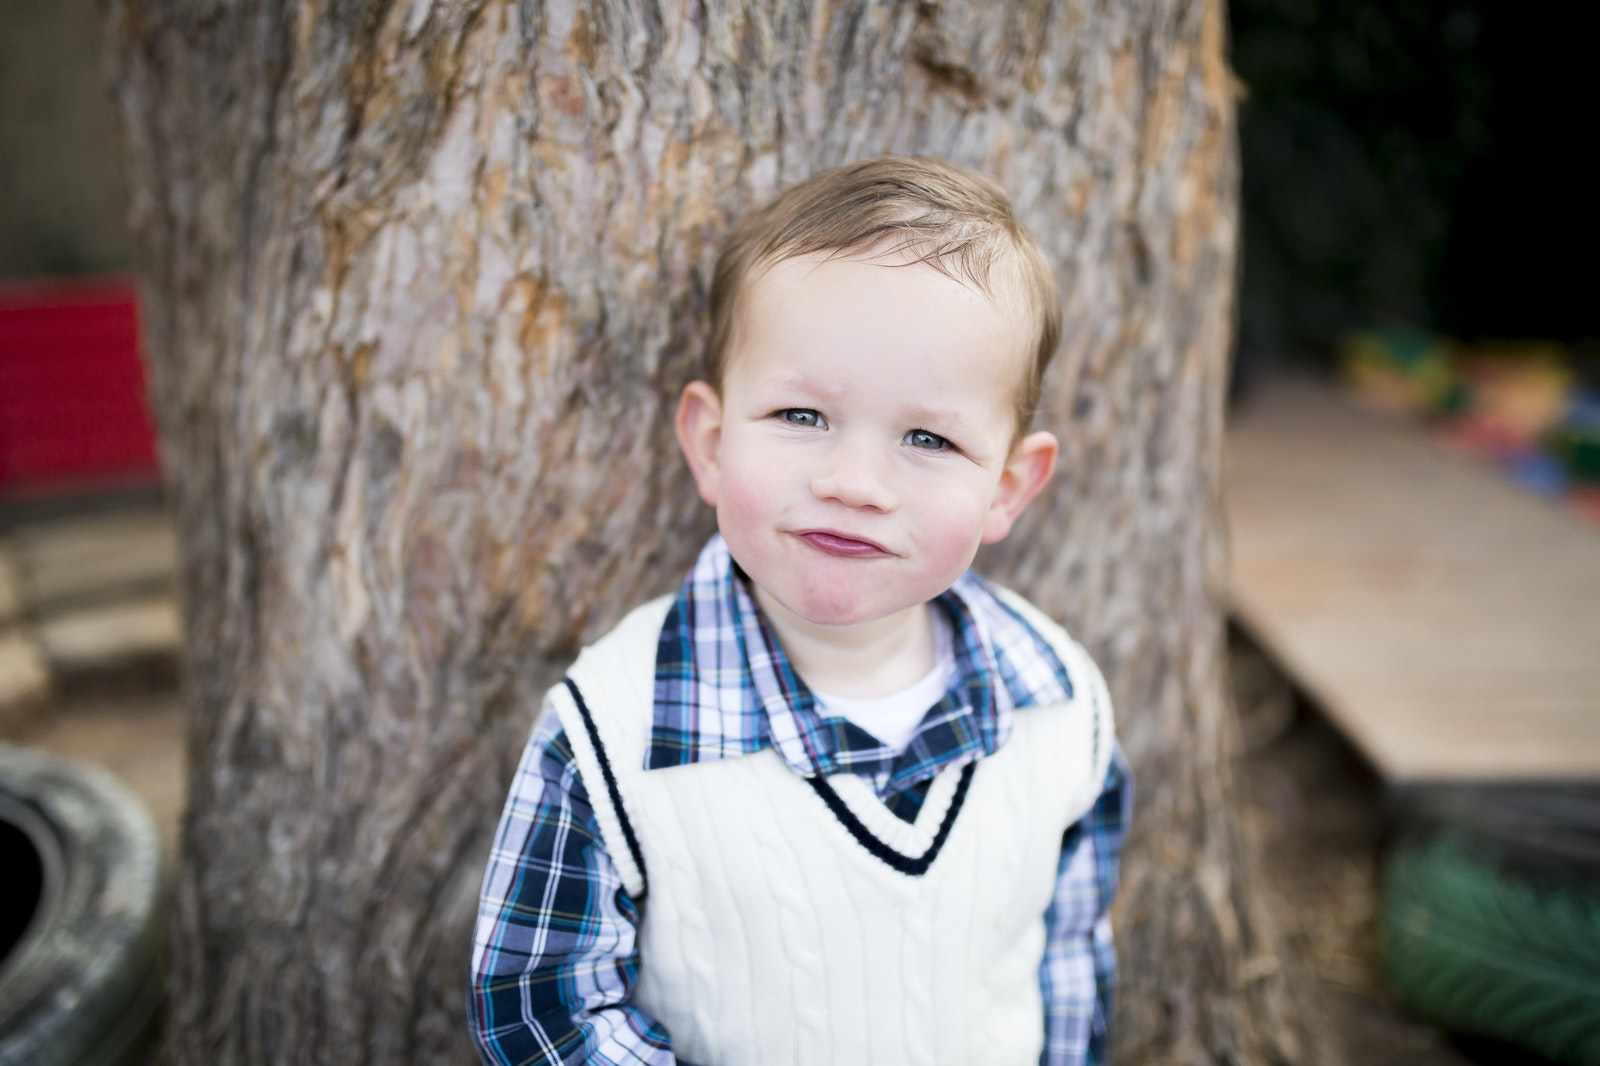 Best Wollongong Daycare Preschool Photographer 7